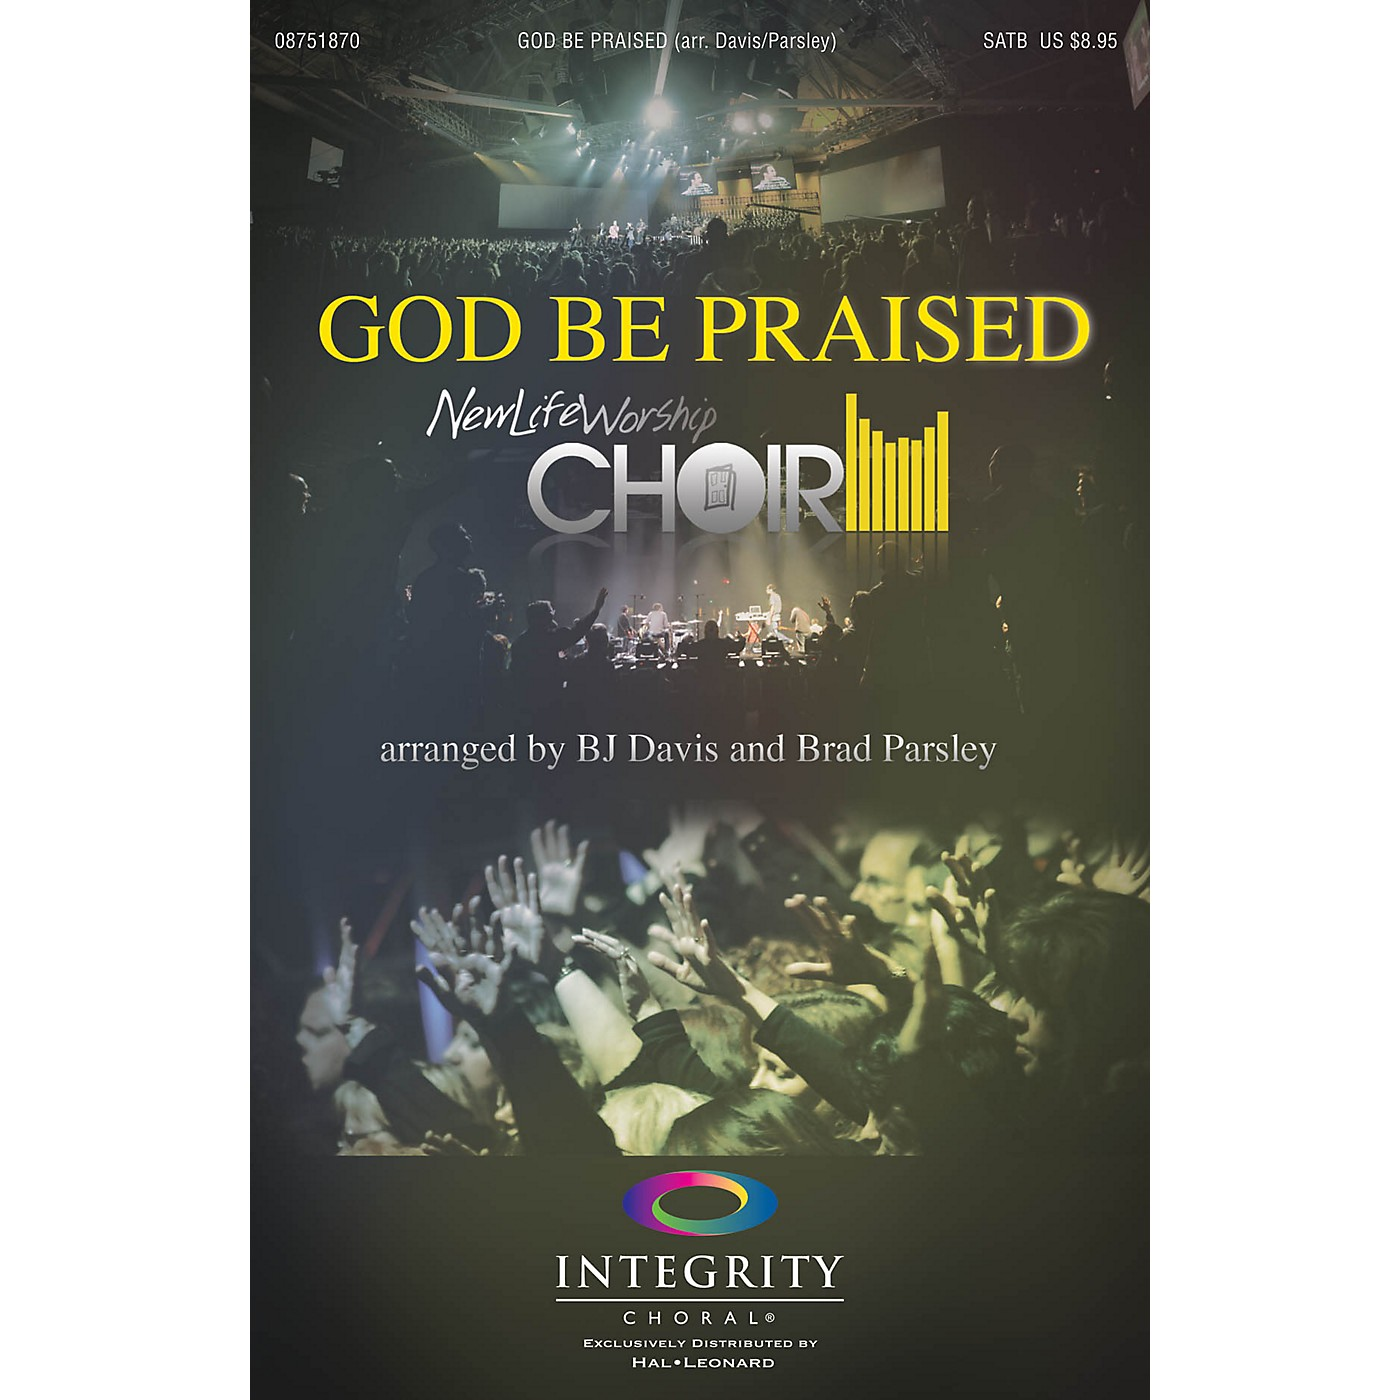 Integrity Choral God Be Praised PREV CD by New Life Worship Arranged by BJ Davis thumbnail